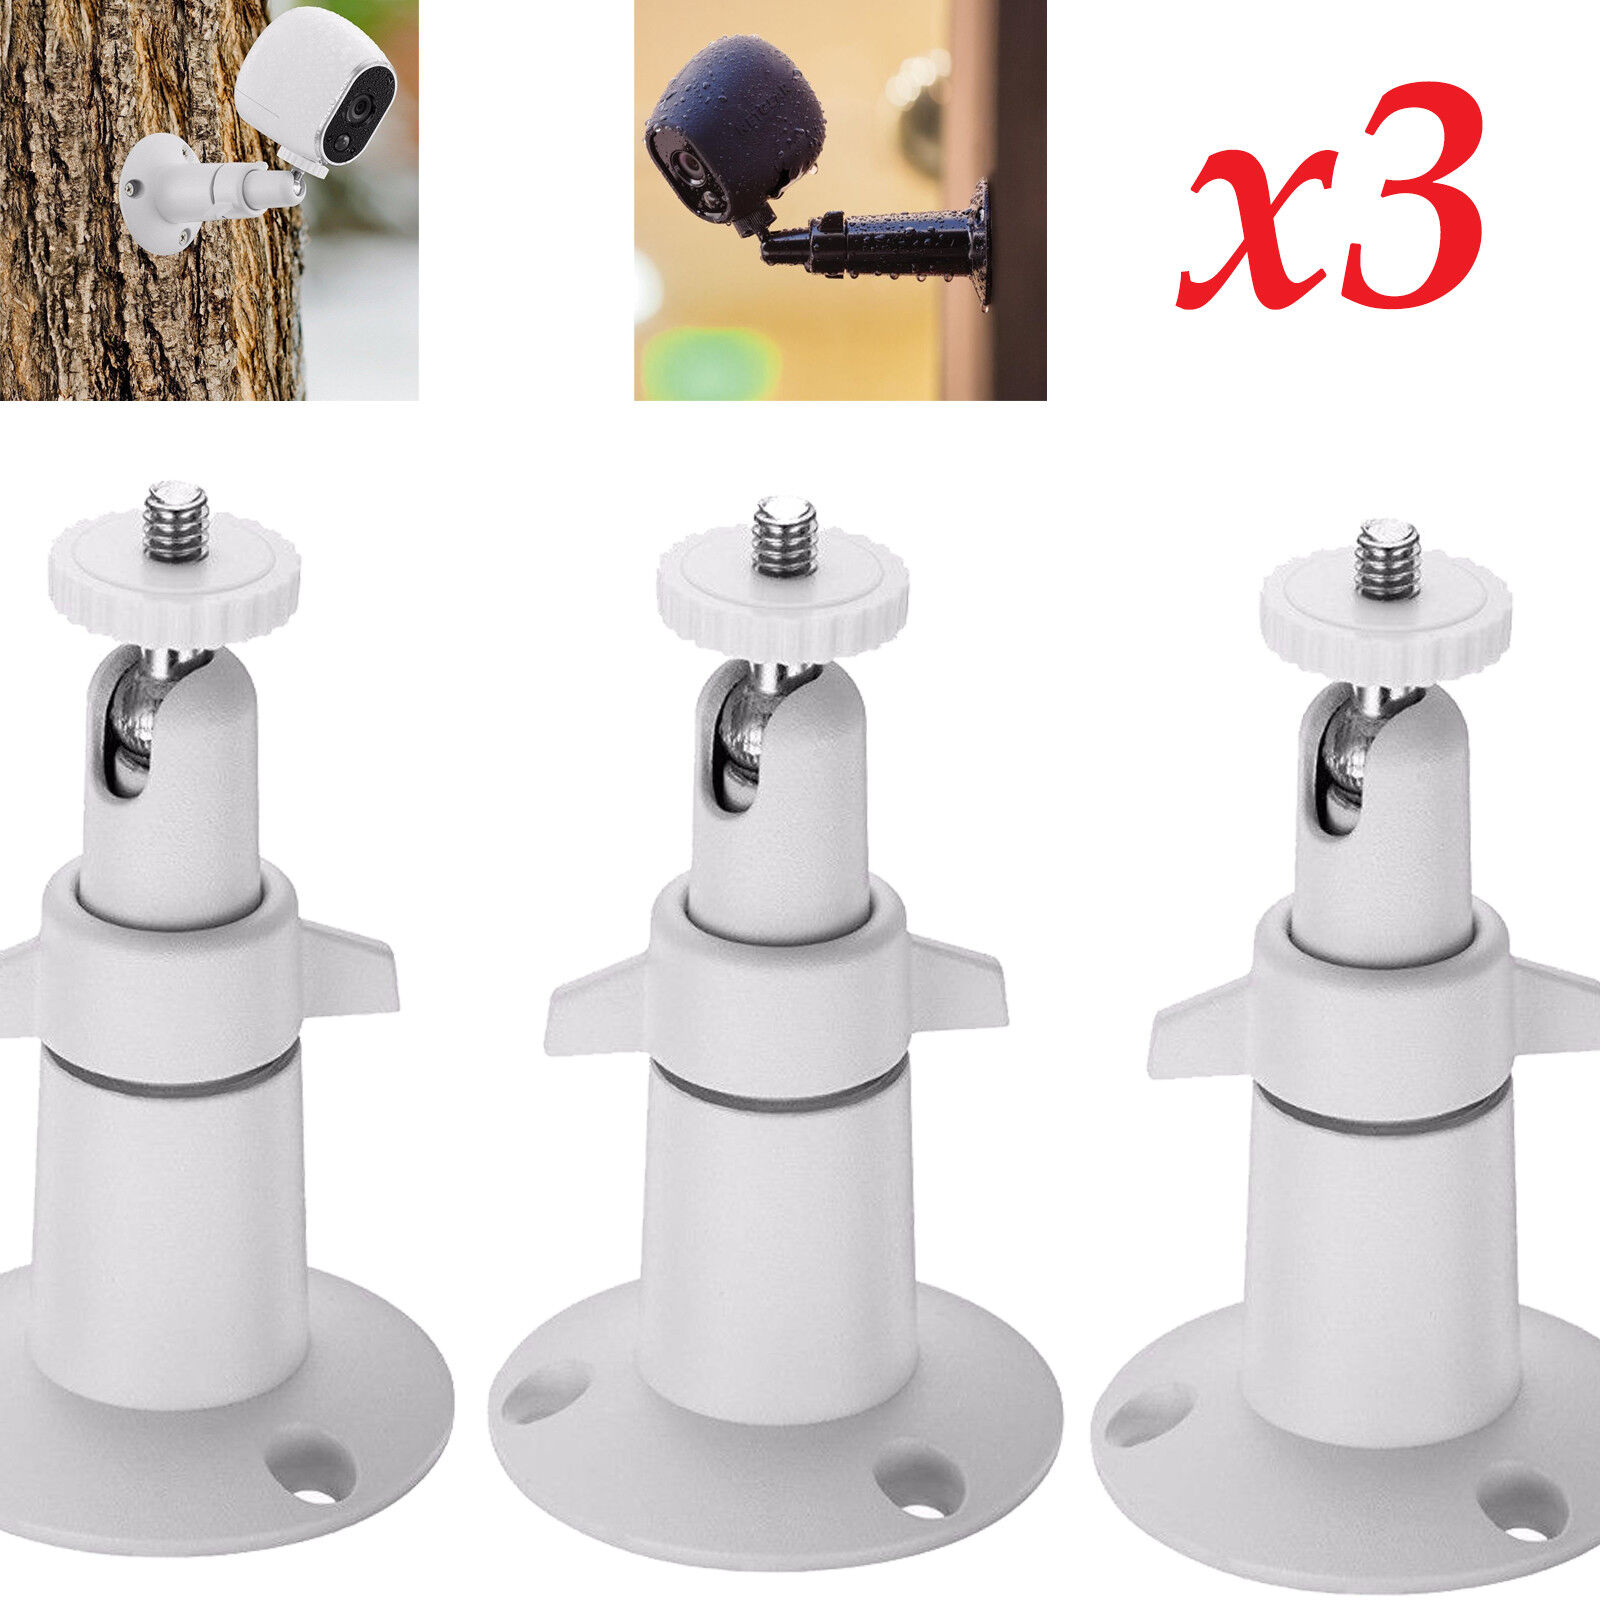 3-pack Security Wall Holder Mount Outdoor/Indoor for Arlo Pro 2/Pro/Arlo Camera Consumer Electronics